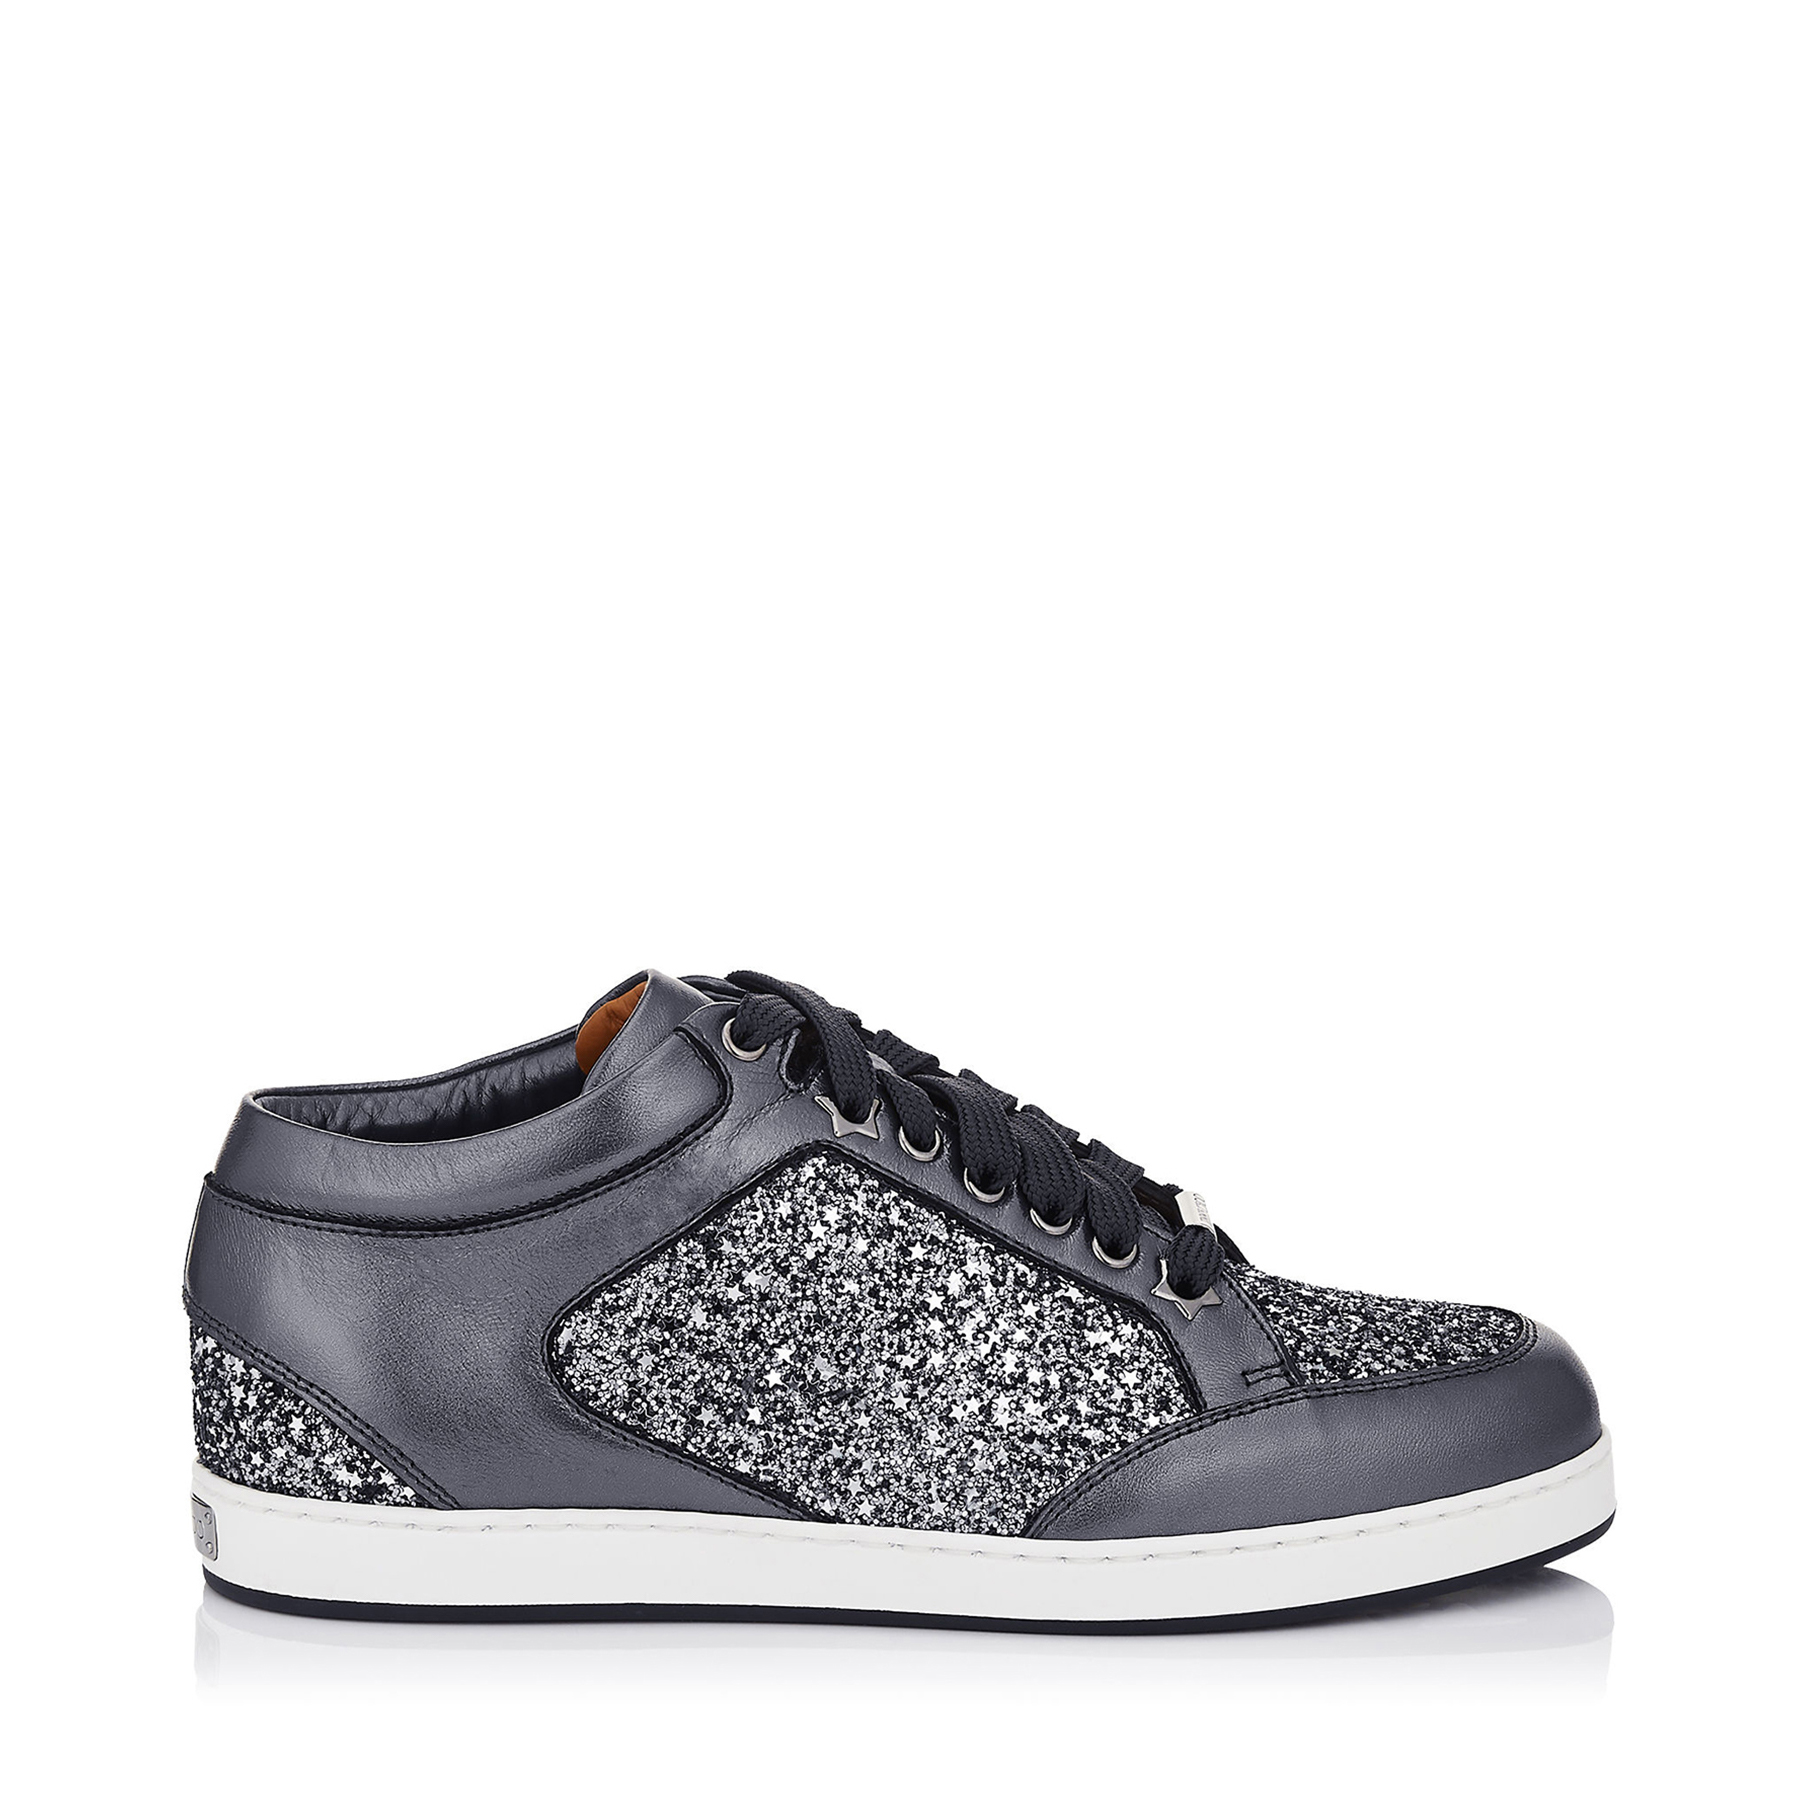 MIAMI Gunmetal Mix Star Coarse Glitter Fabric and Metallic Nappa Sneakers by Jimmy Choo